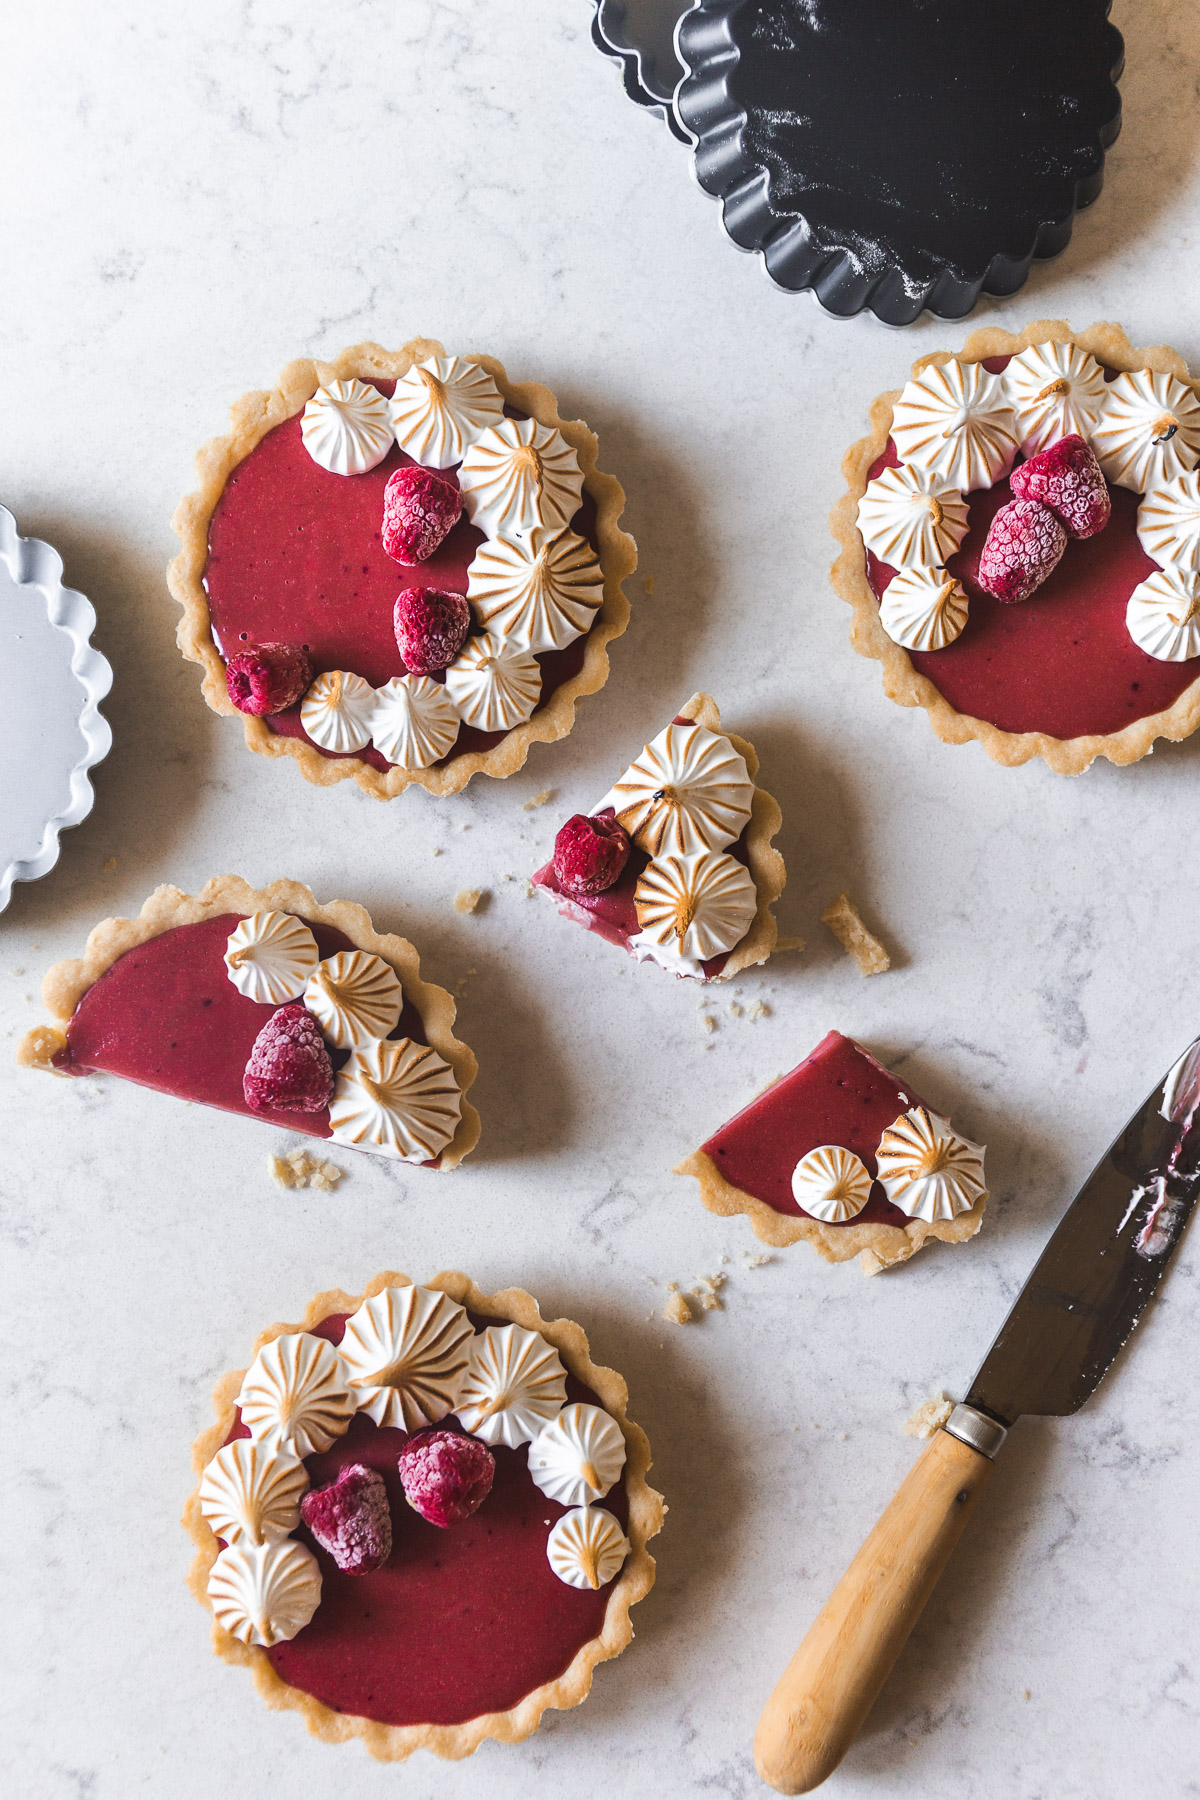 RASPBERRY INSPIRATION and Hibiscus Meringue Tartlets Recipe by Karlee Flores